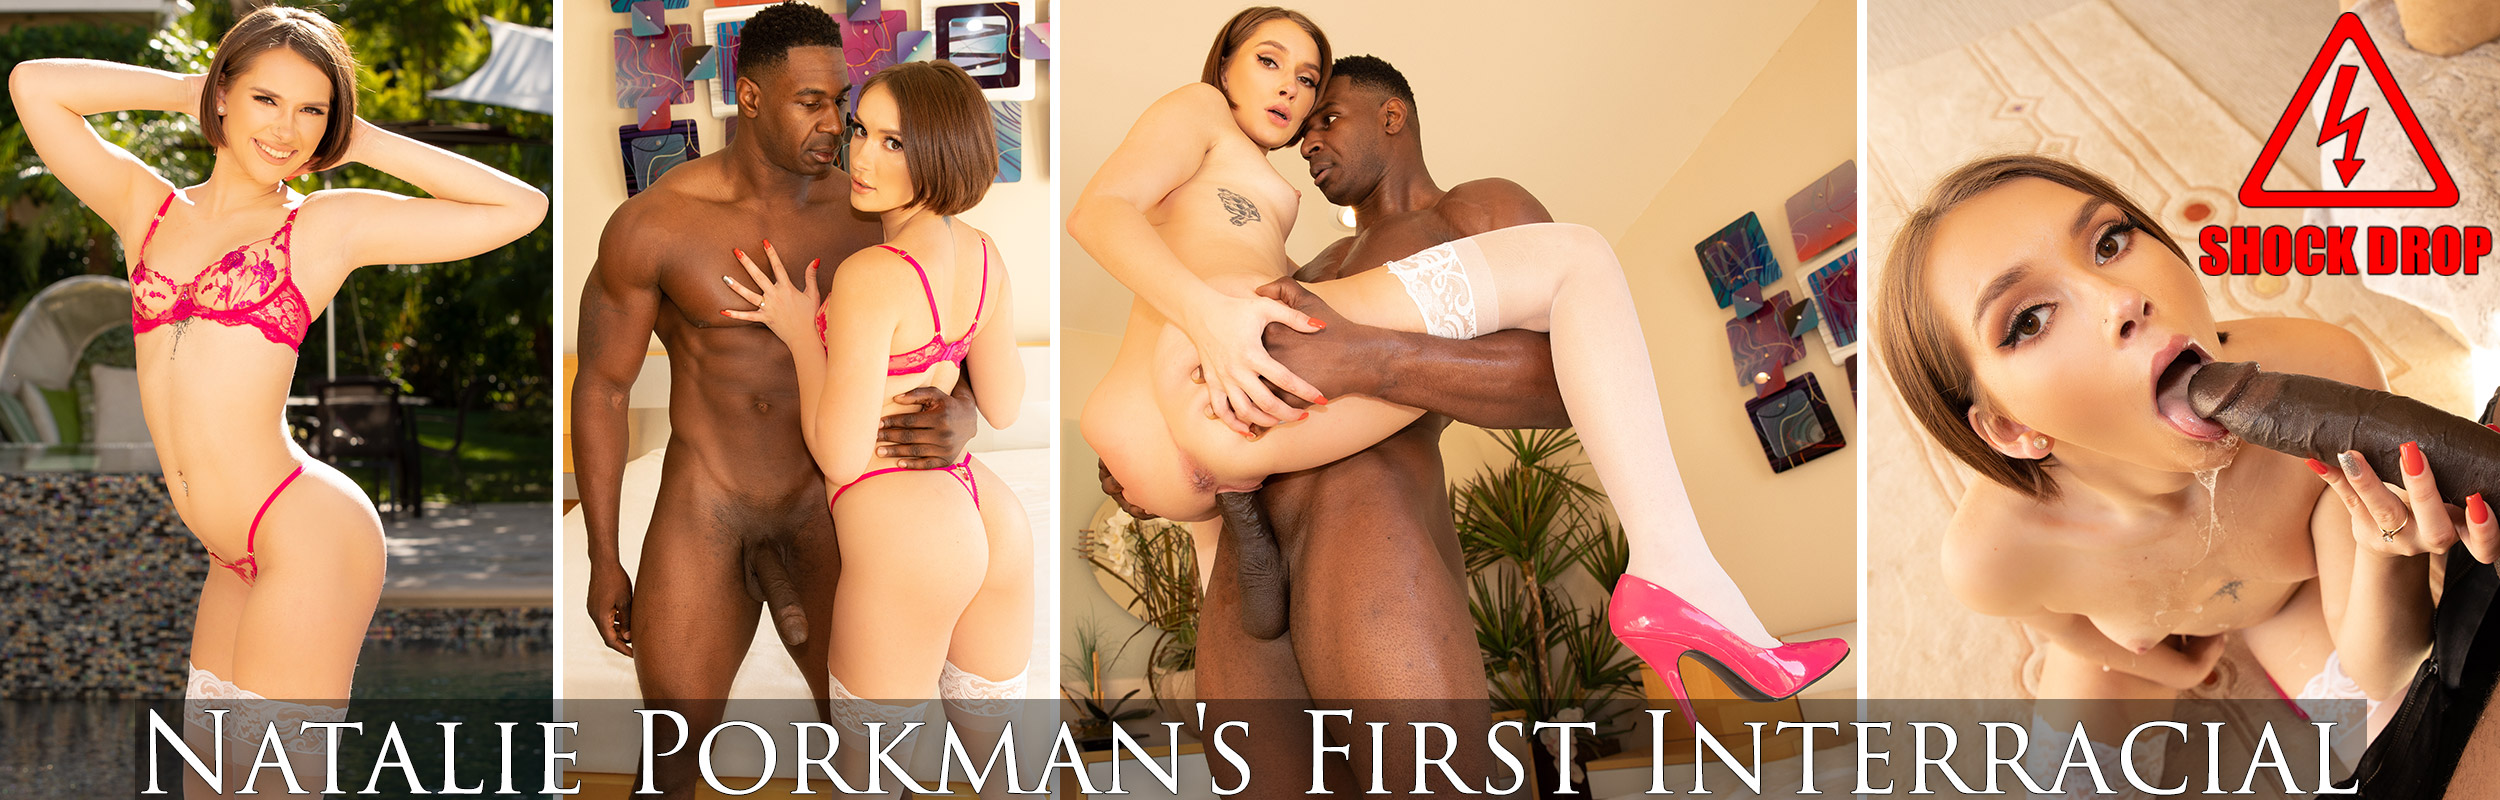 Natalie Porkman's First Interracial